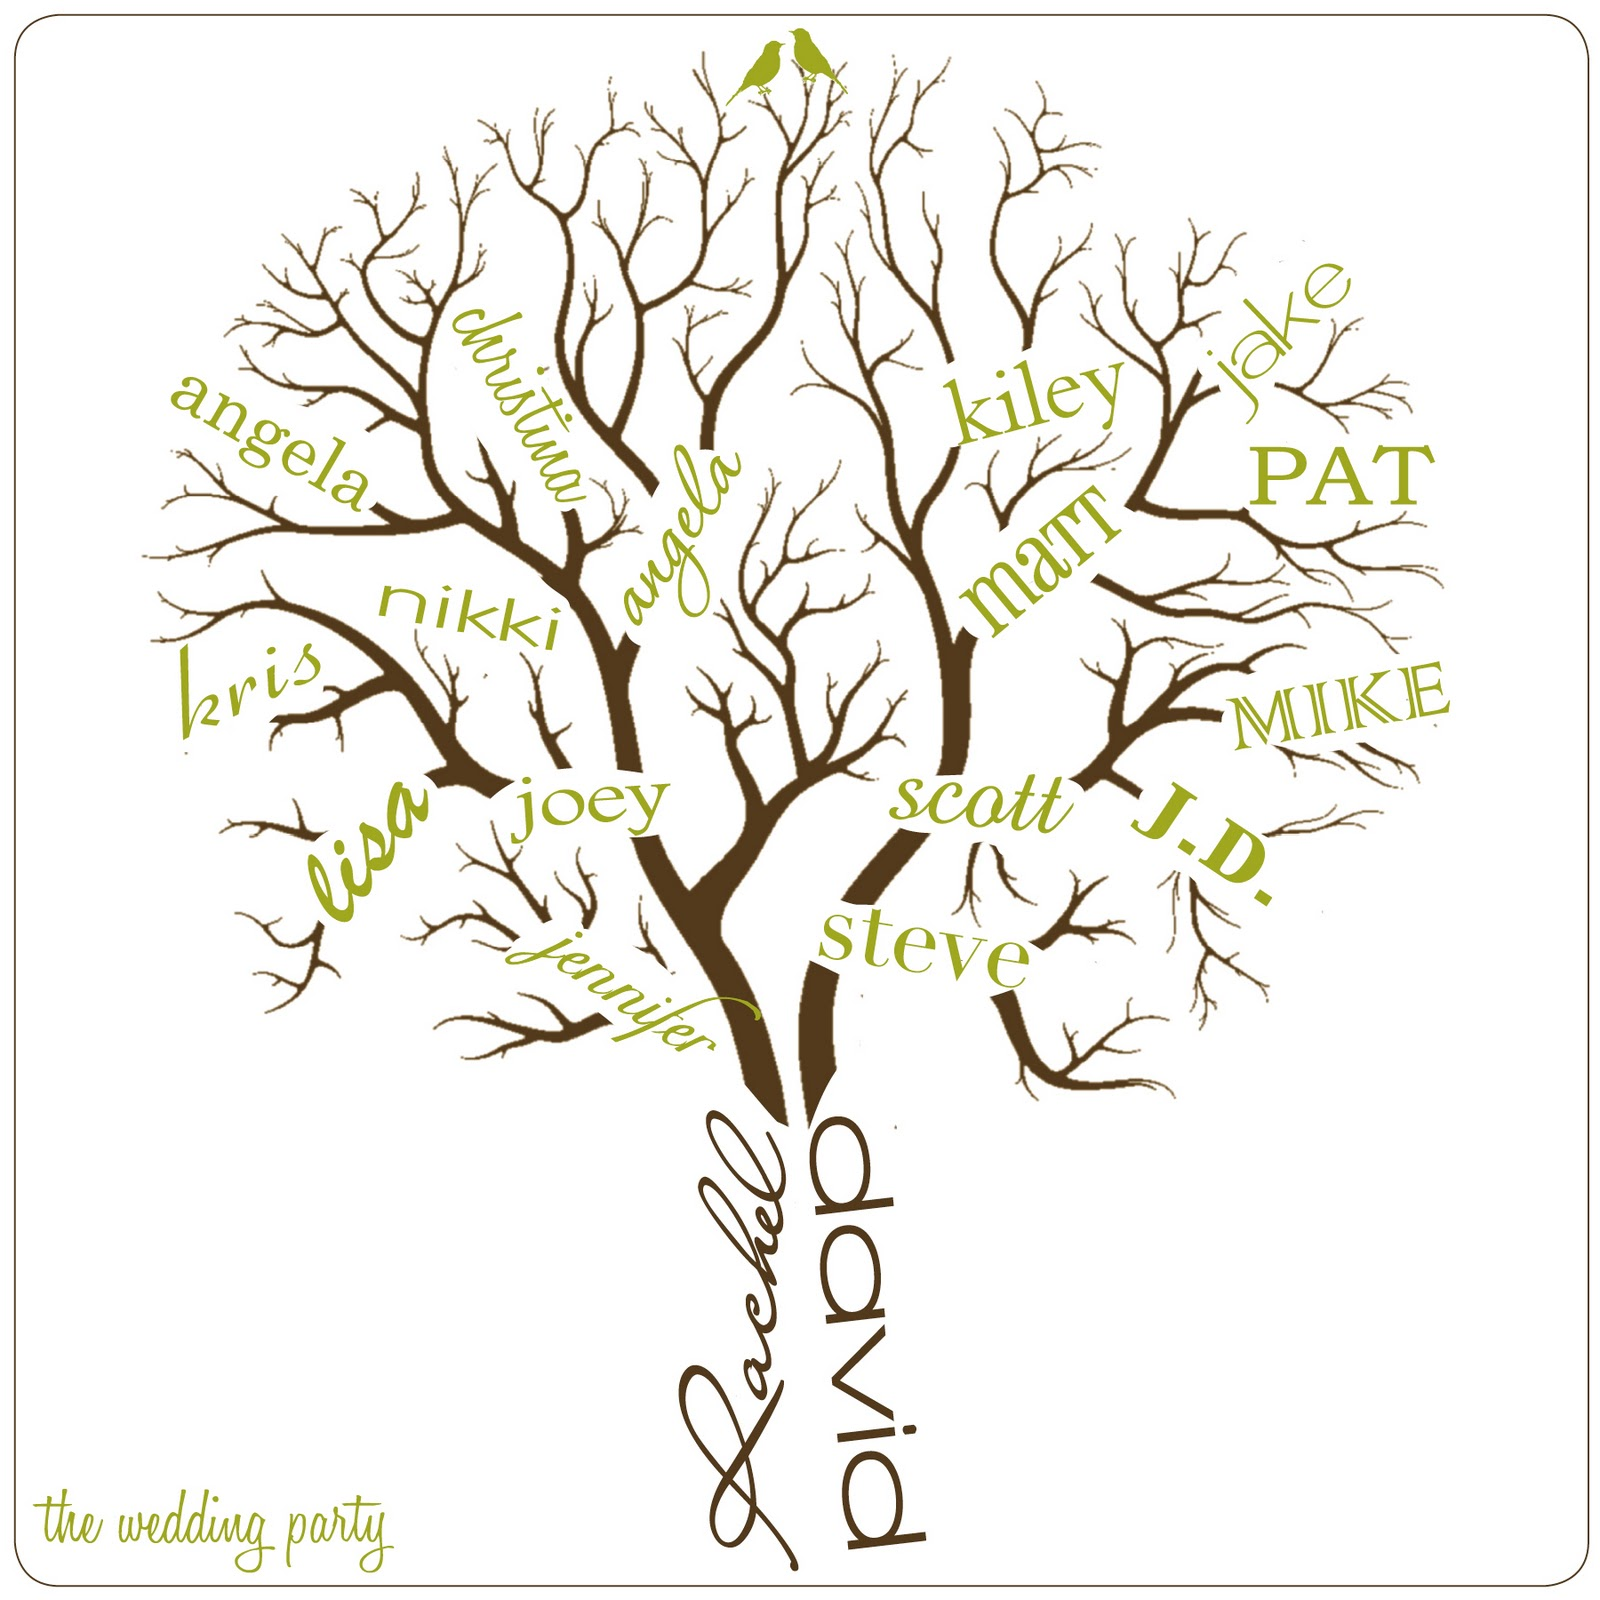 family tree ideas on pinterest trees genealogy and family tree